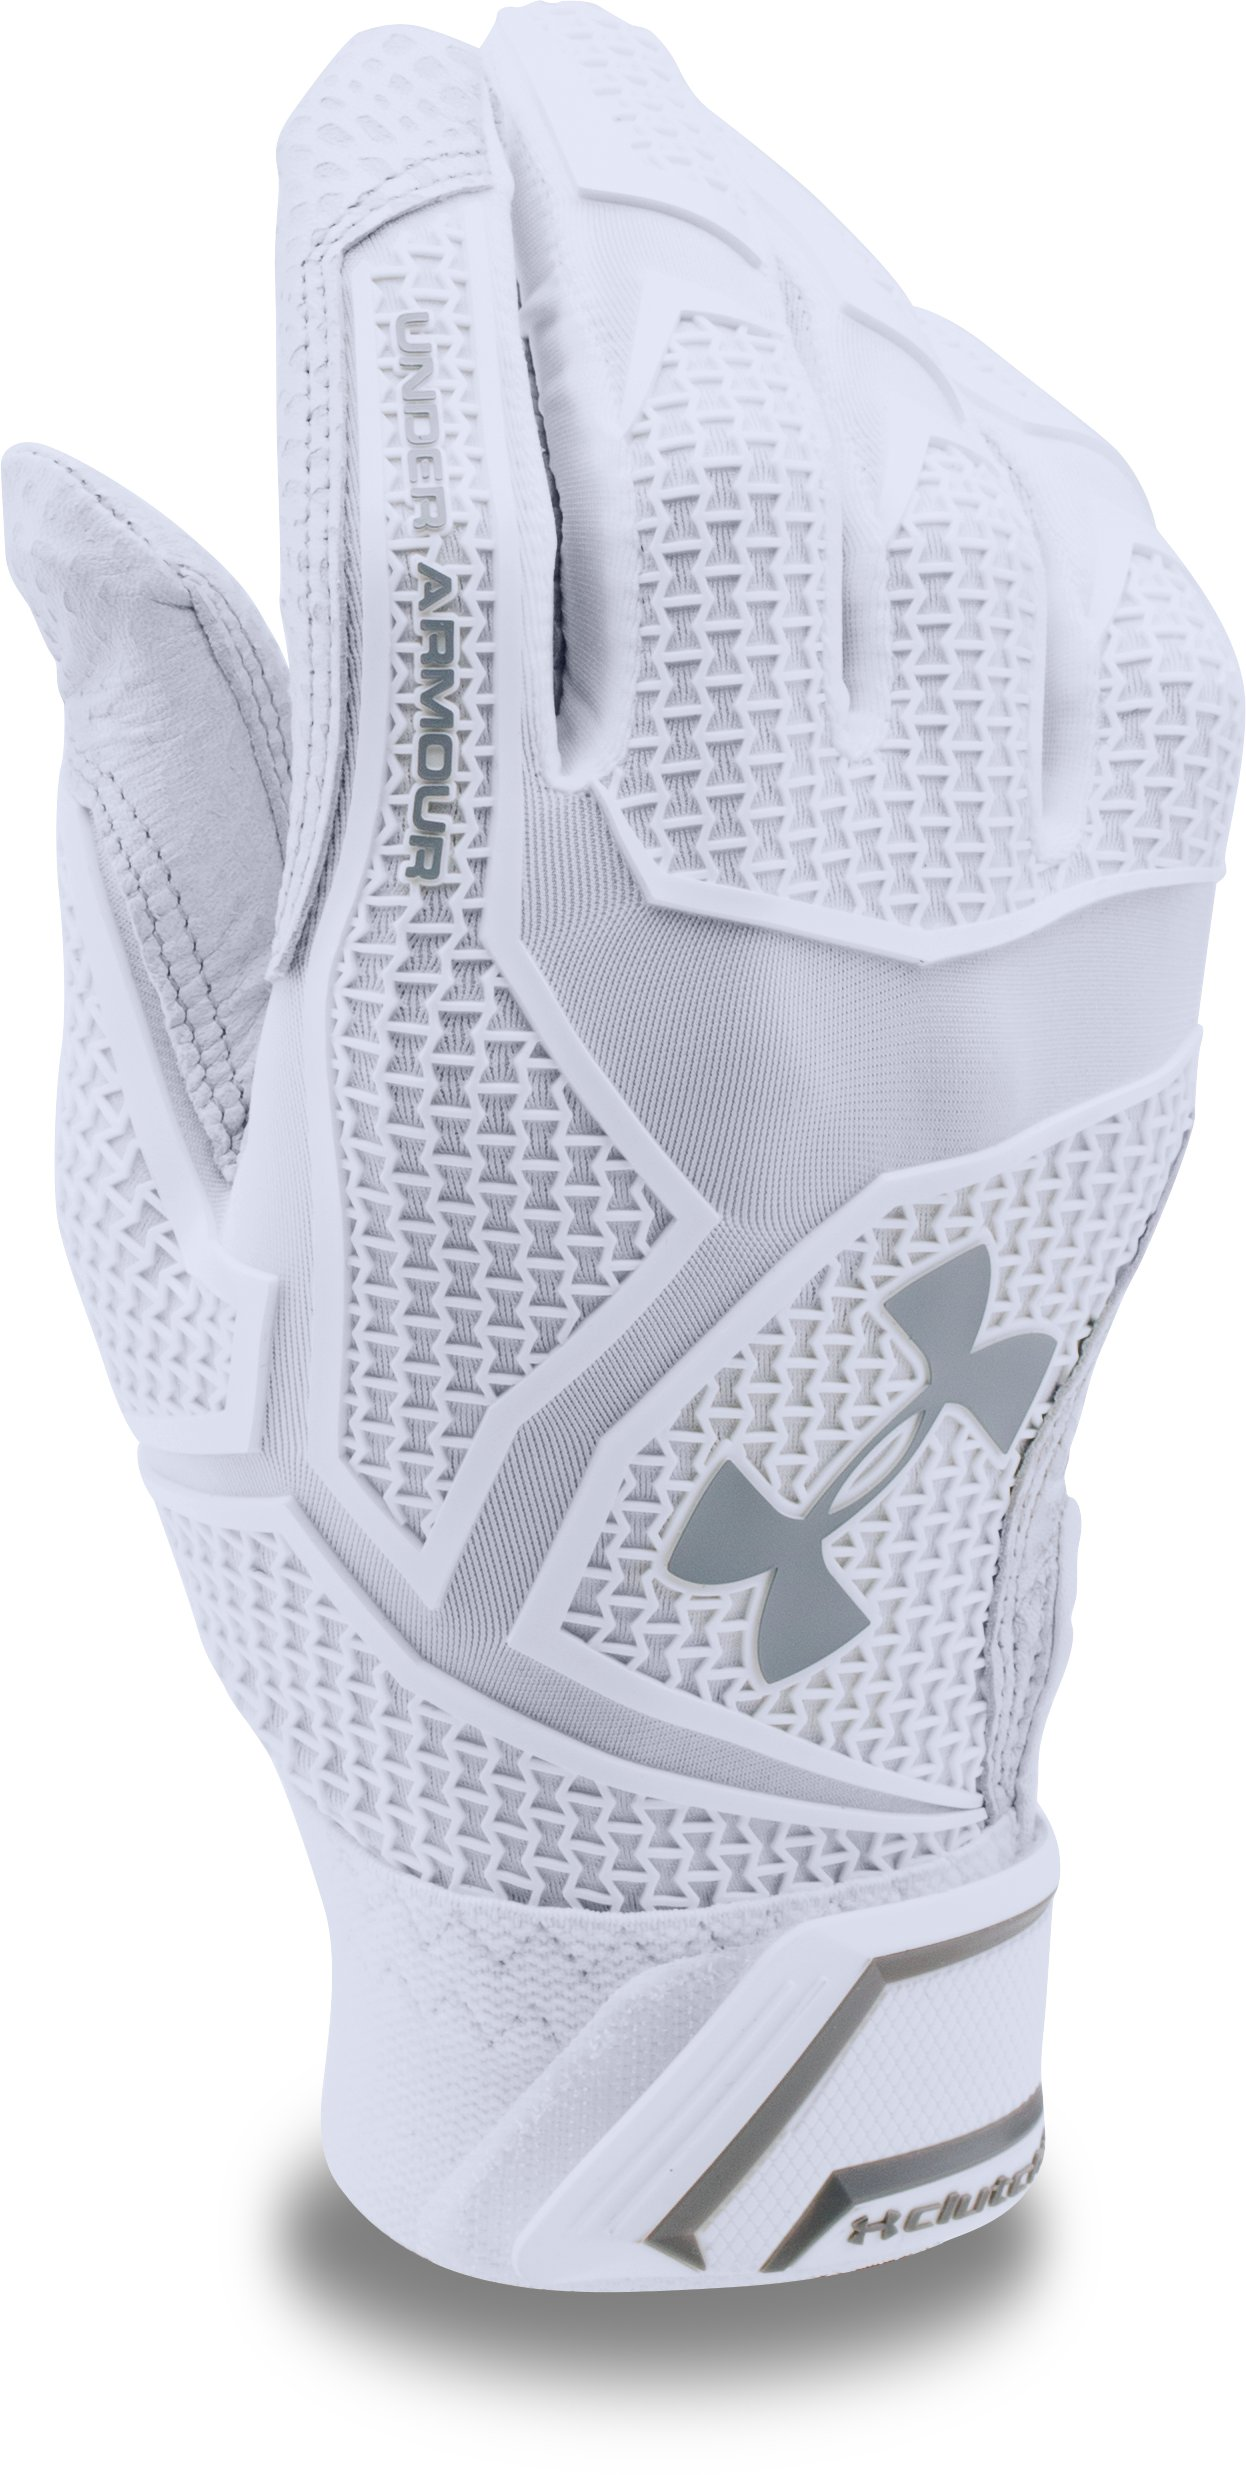 Men's UA Yard ClutchFit™ Baseball Batting Gloves — All-Star Game Edition, White